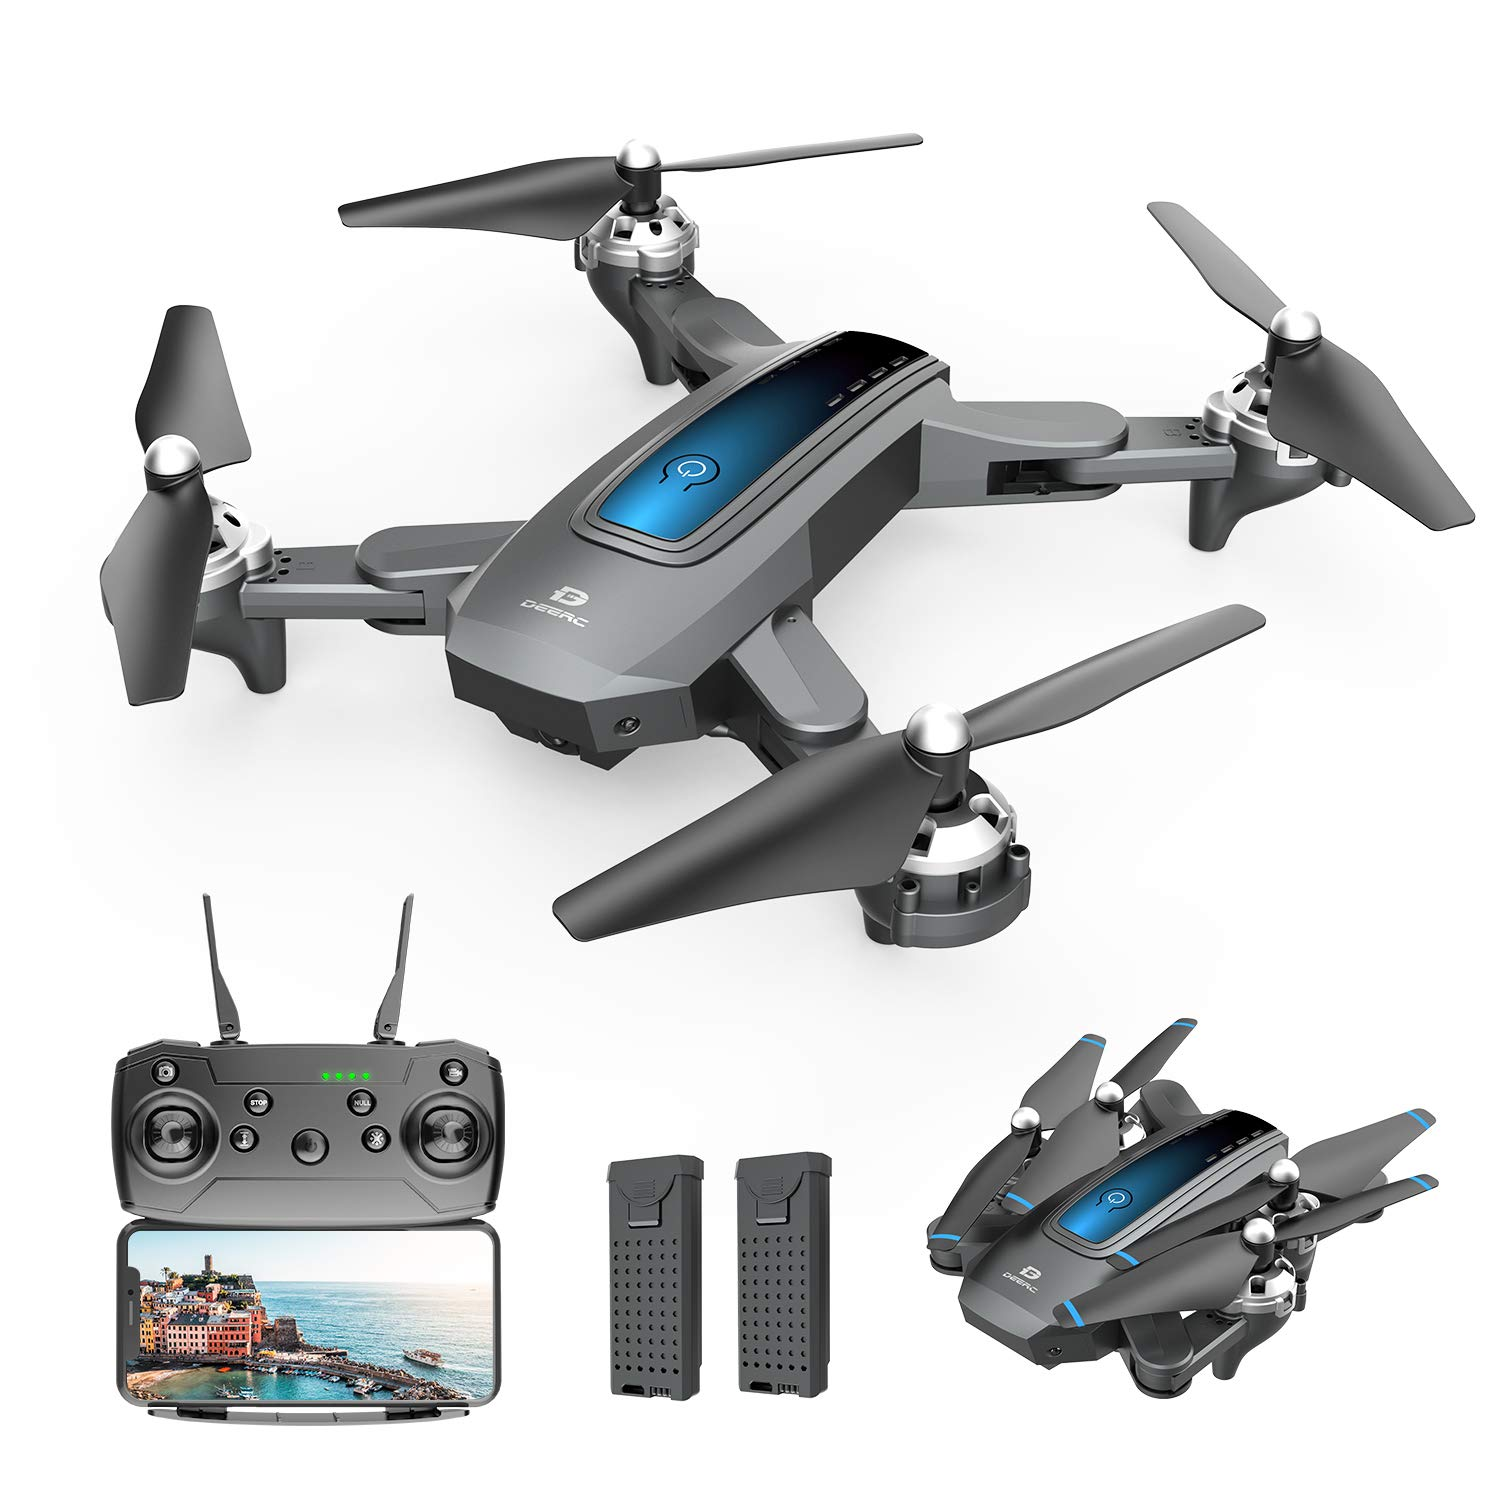 Gravity Sensor,Foldable RC Quadcopter with 3 Batteries RC Drone Kids with 1080P Live Video Headless Mode,3 Speed Mode Tap Fly,Altitude Hold